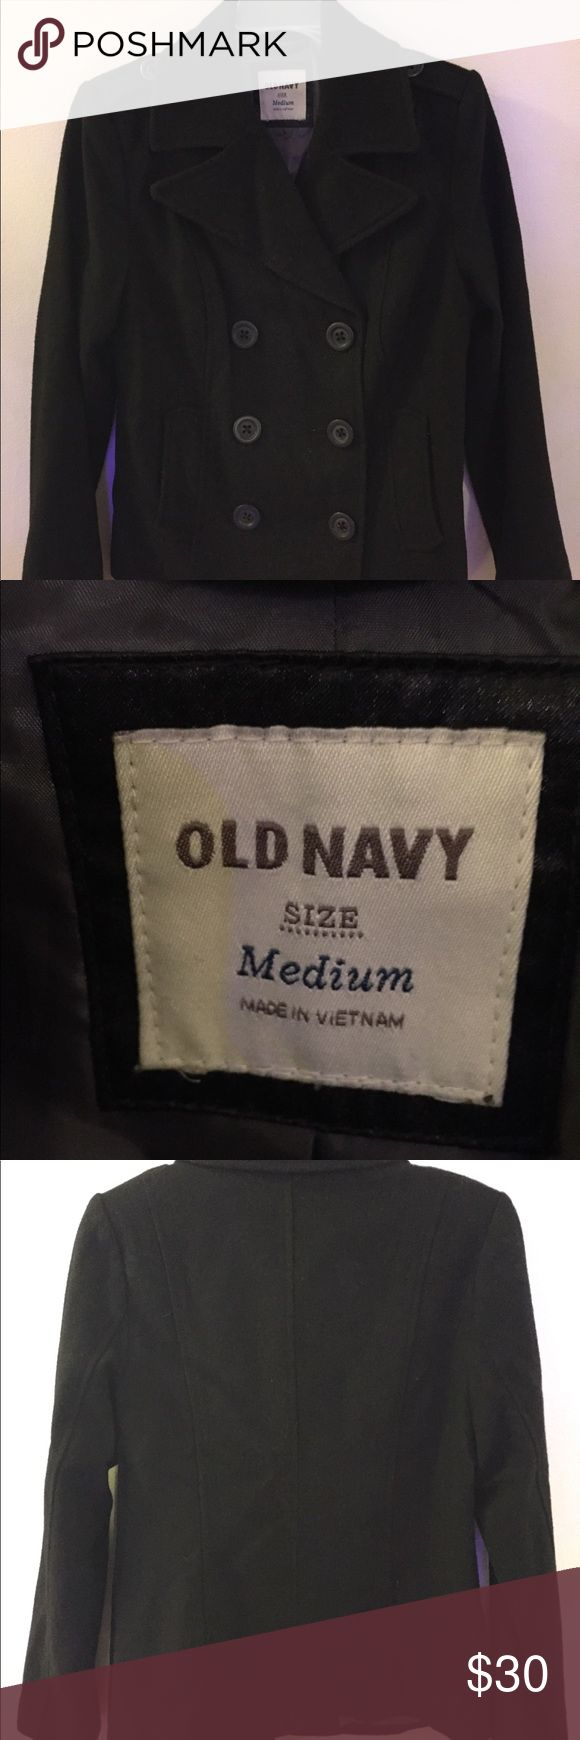 "Old Navy pea coat- medium Medium sized black Old Navy pea coat. Bought new but only worn a handful of times. Size didn't fit me right. I'm 5'2"" and it hits me right at the hips for reference. Well cared for, smoke free home. Old Navy Jackets & Coats Pea Coats"